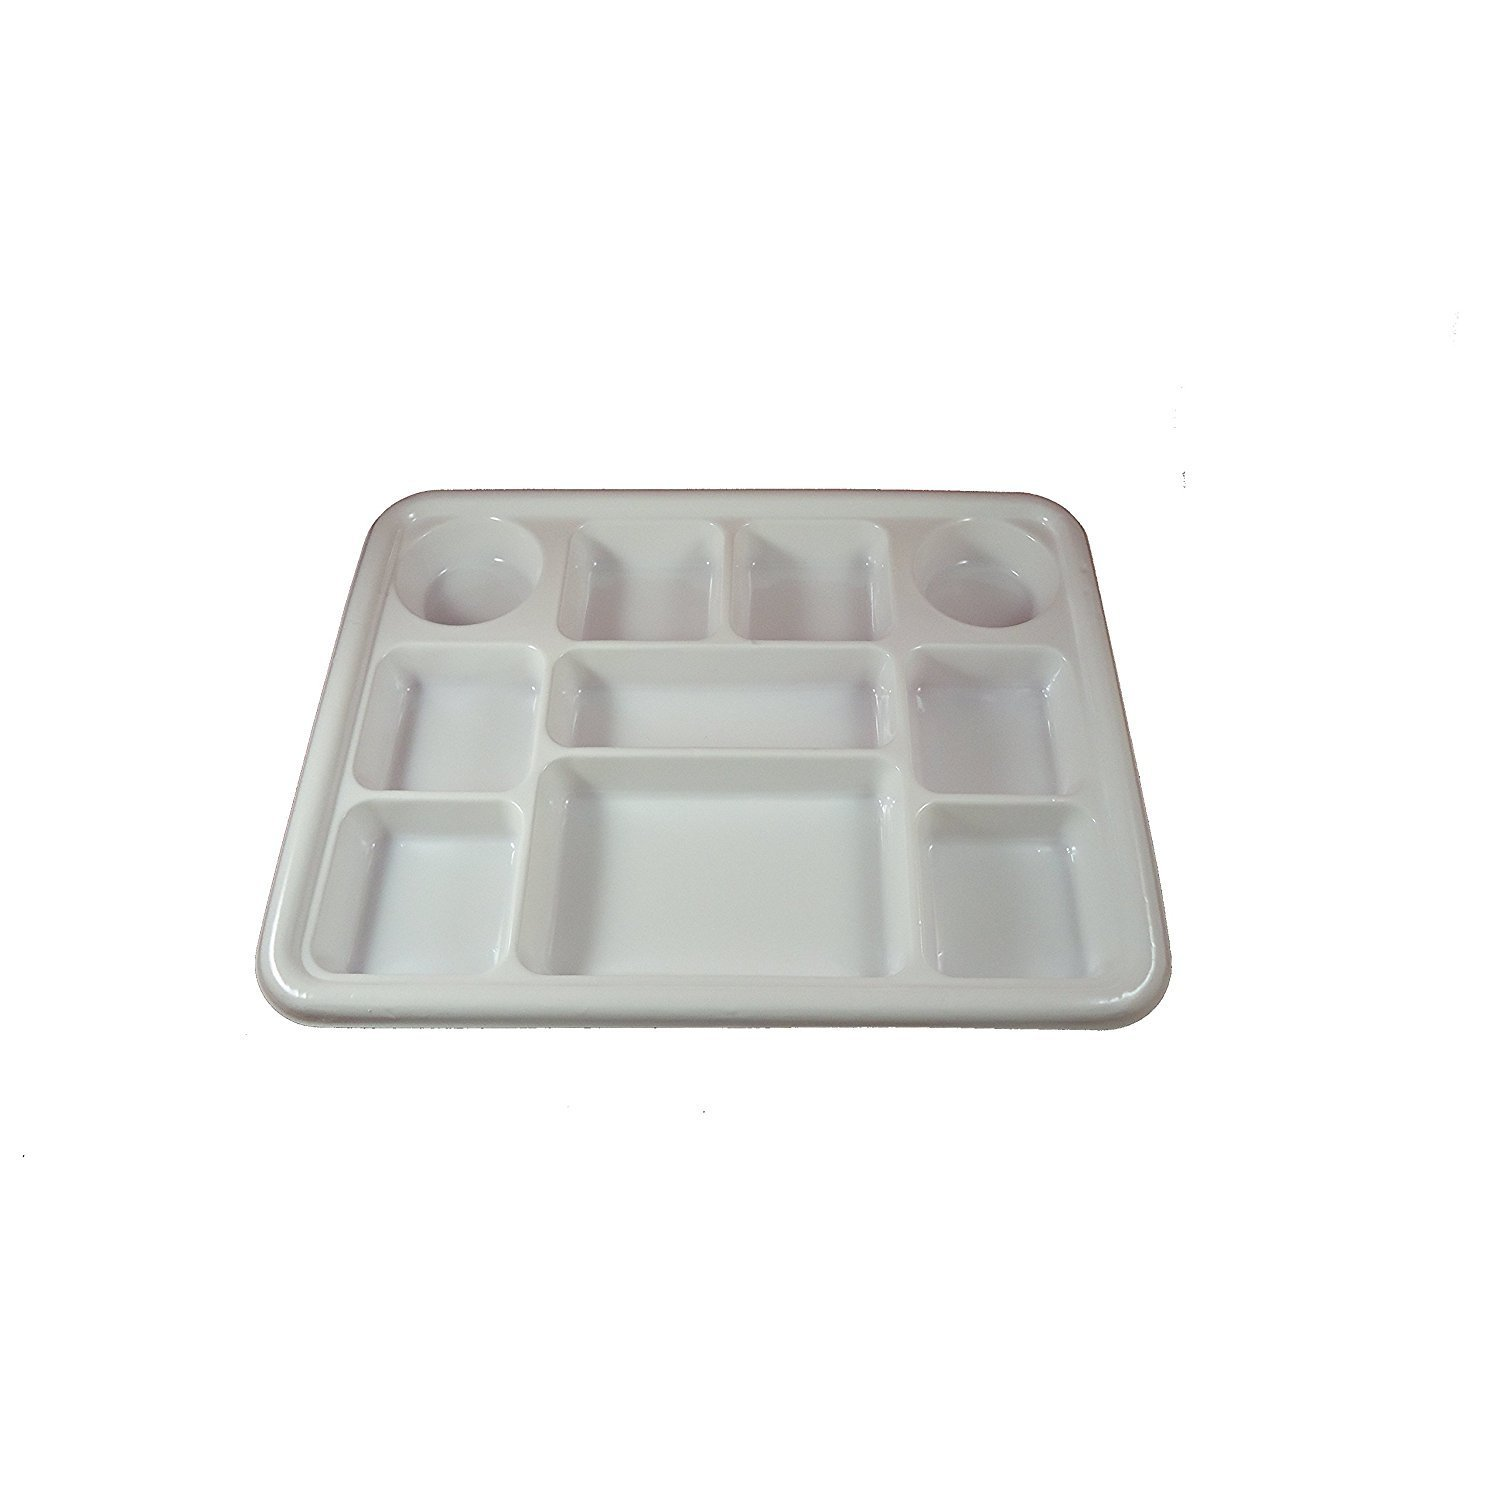 Movie Time Video Party Tray/ Thali/ Plates, 10 compartments, Disposable, 200 Count